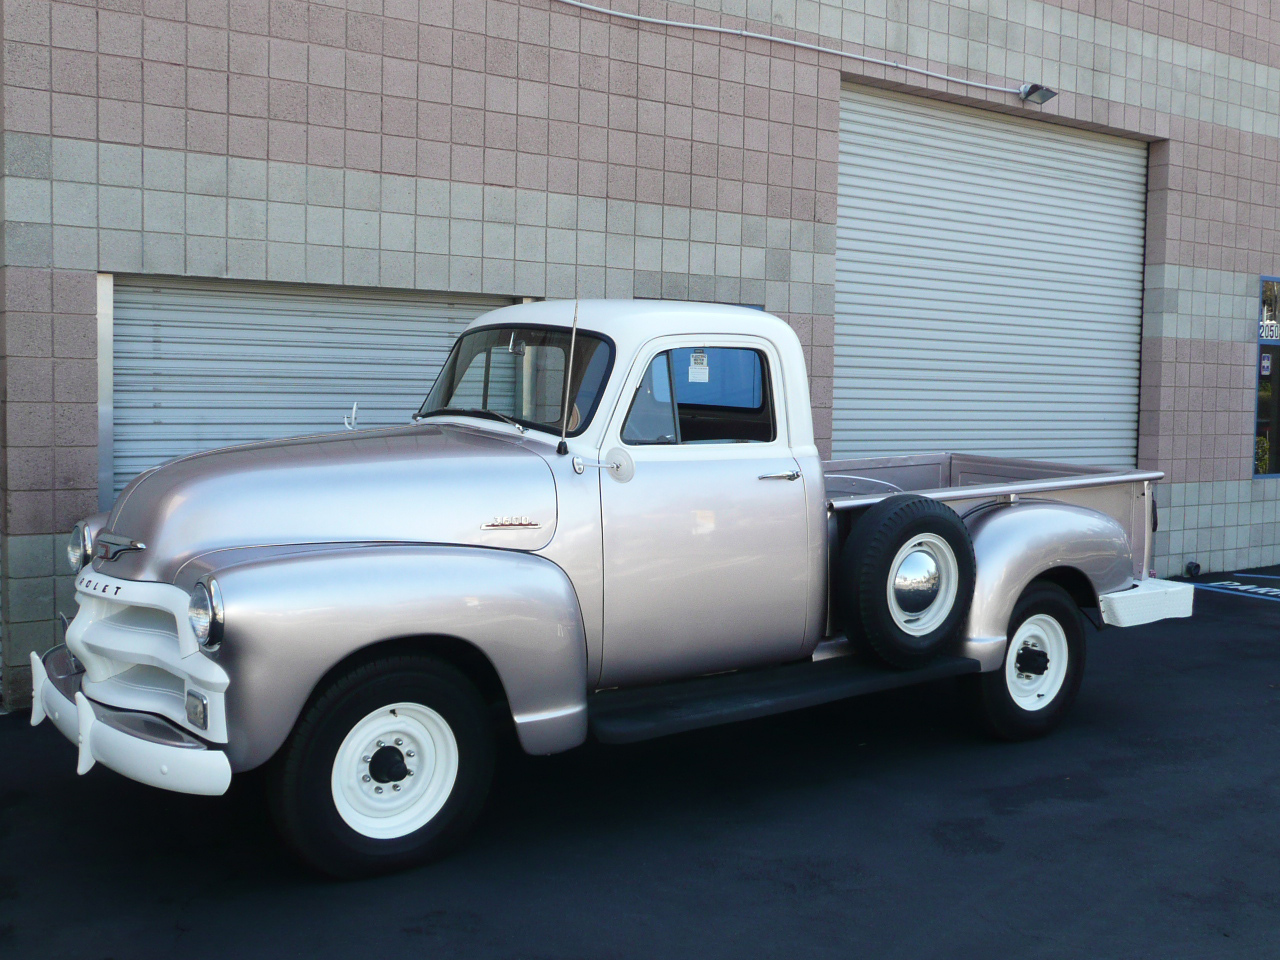 1954 CHEVROLET 3600 LONG BED PICKUP - Front 3/4 - 80992